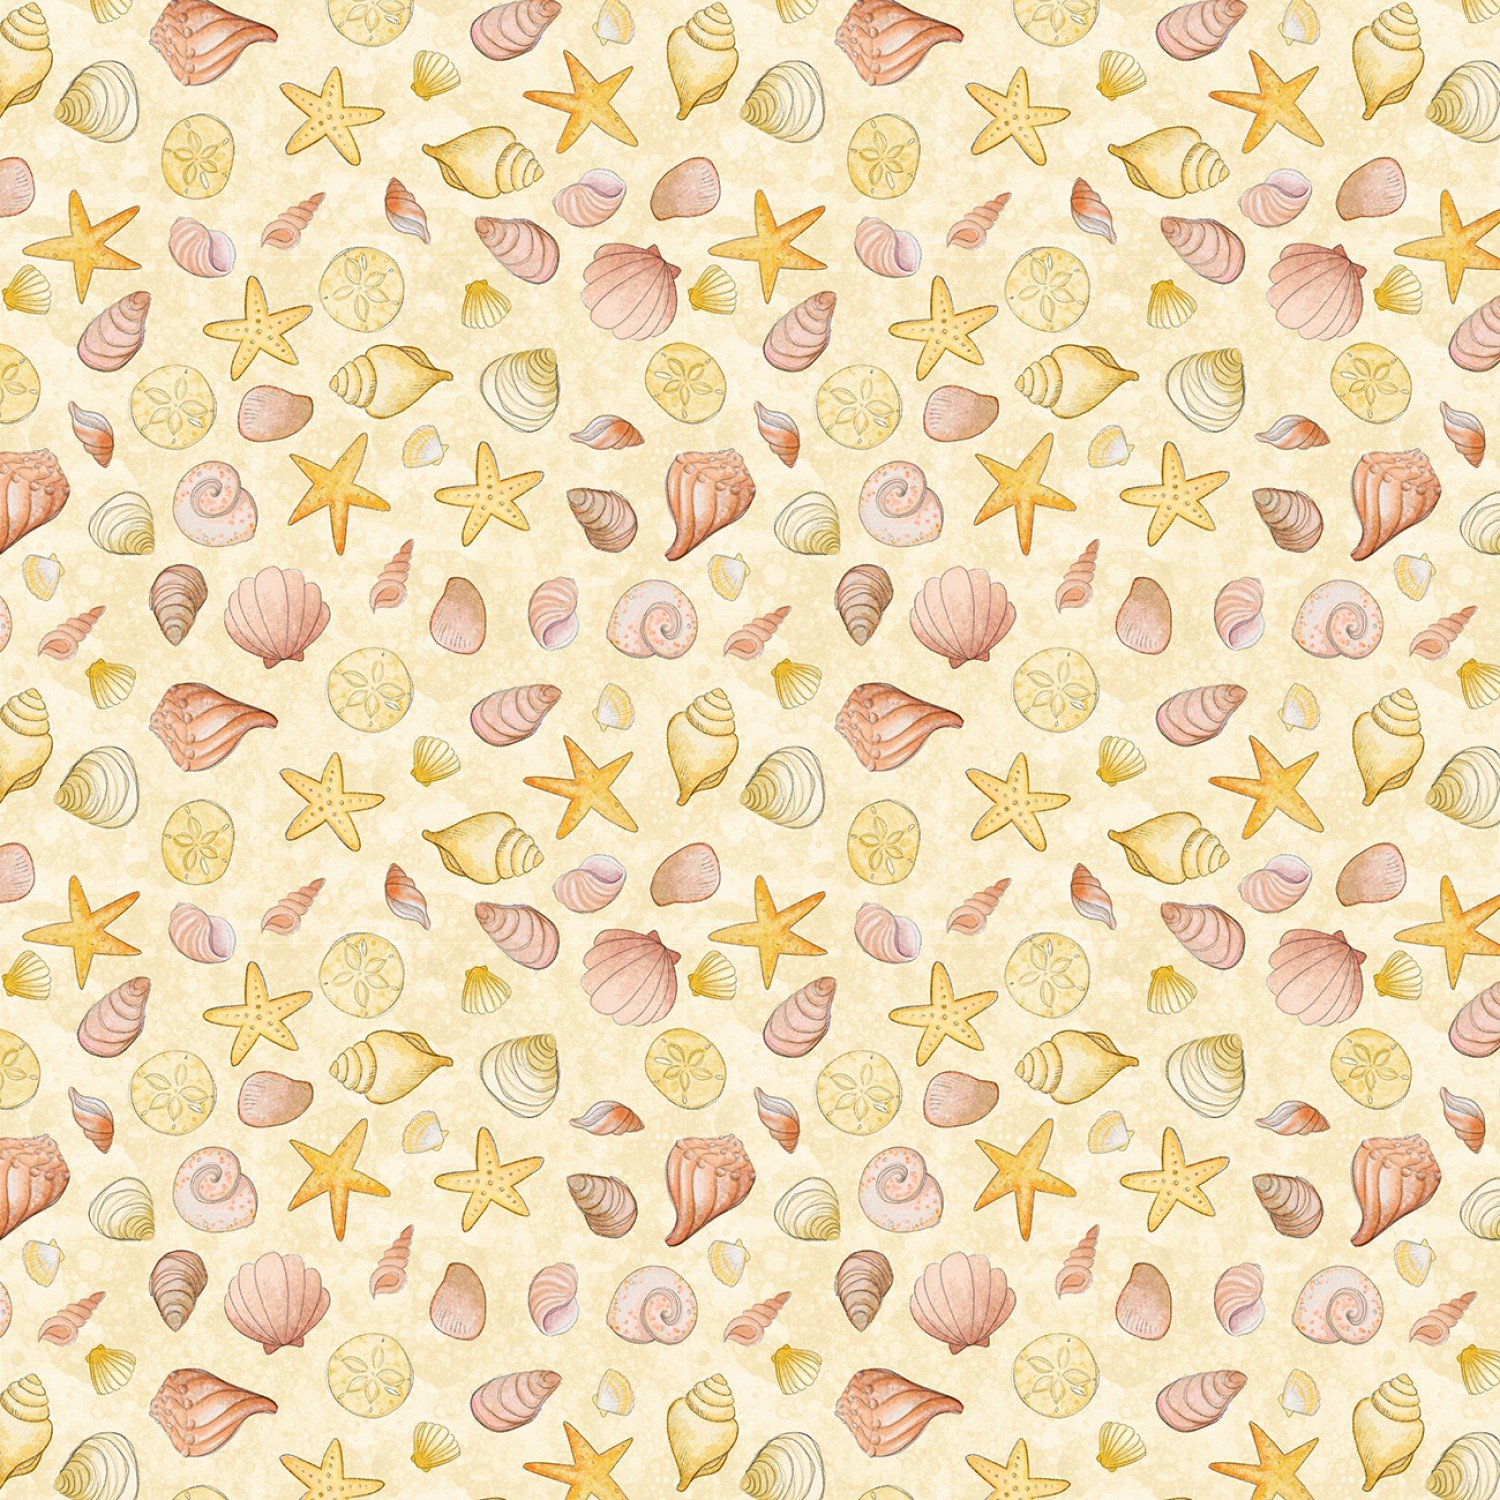 Water Wishes 27568-558 Seashells by Danielle Leone for Wilmington Prints